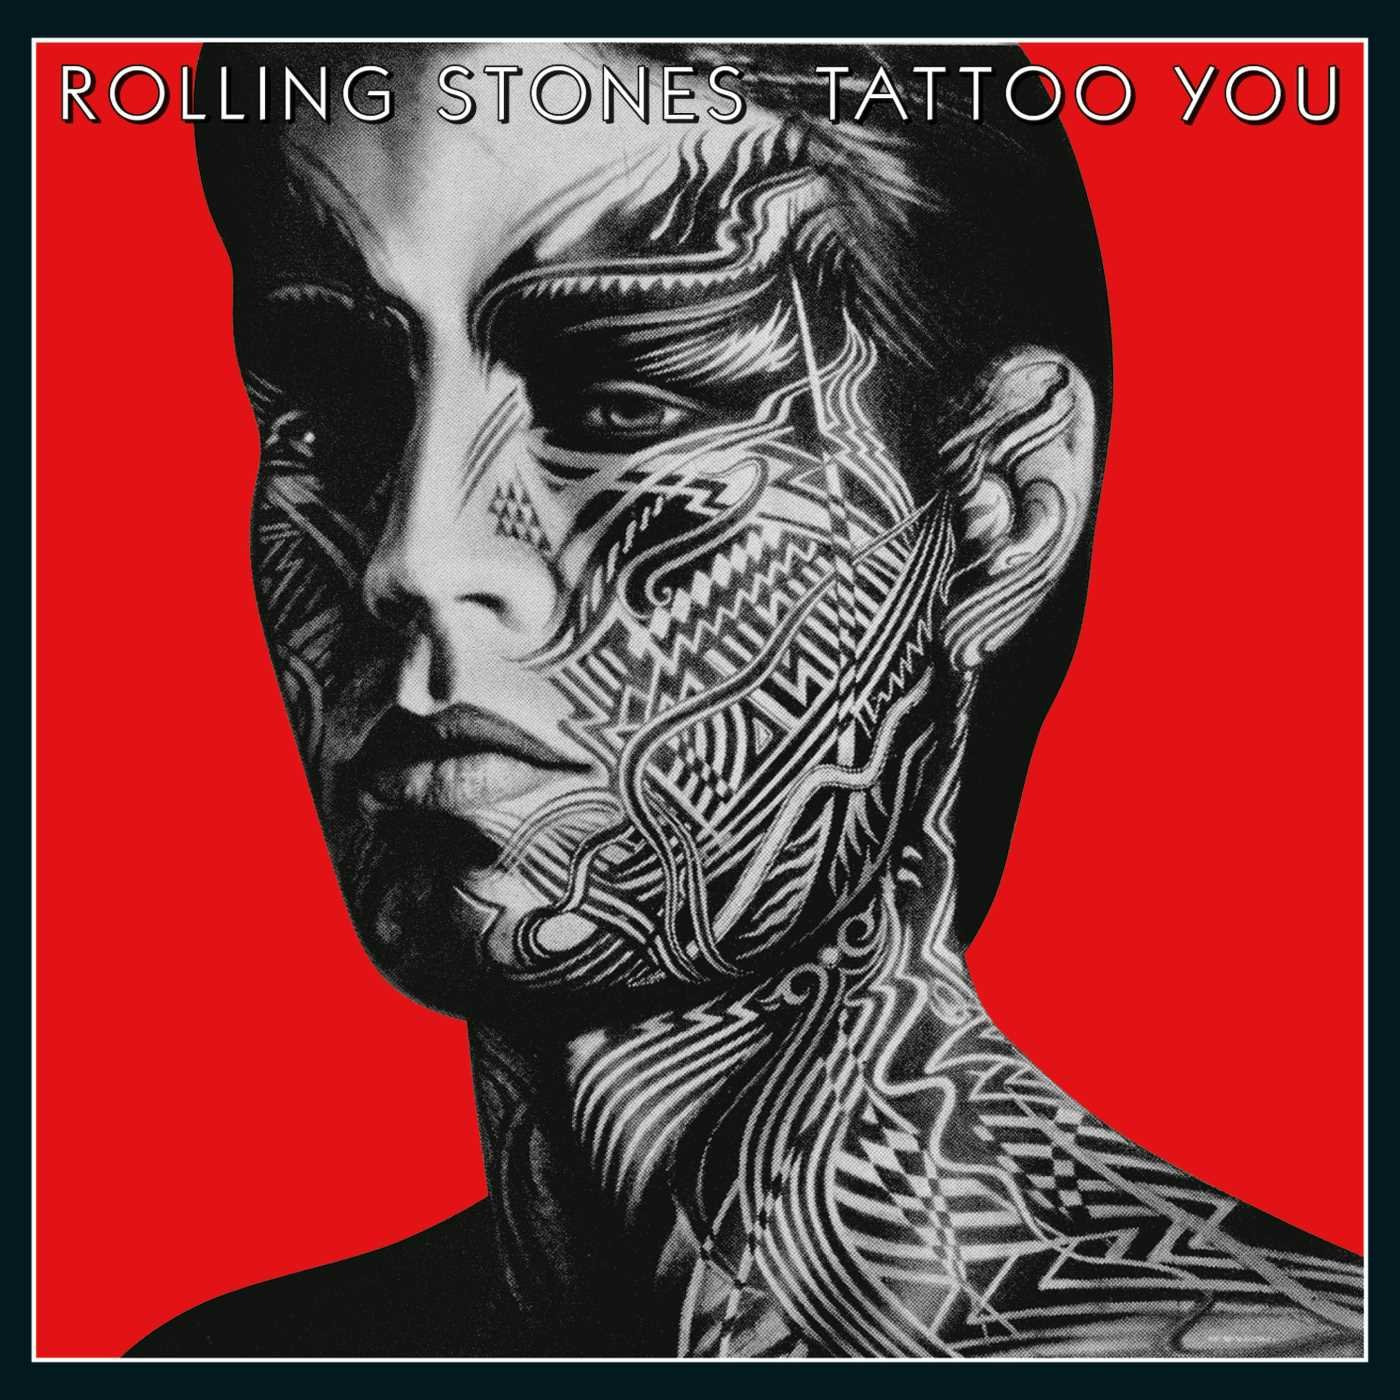 The Rolling Stones - Tattoo You [LP]